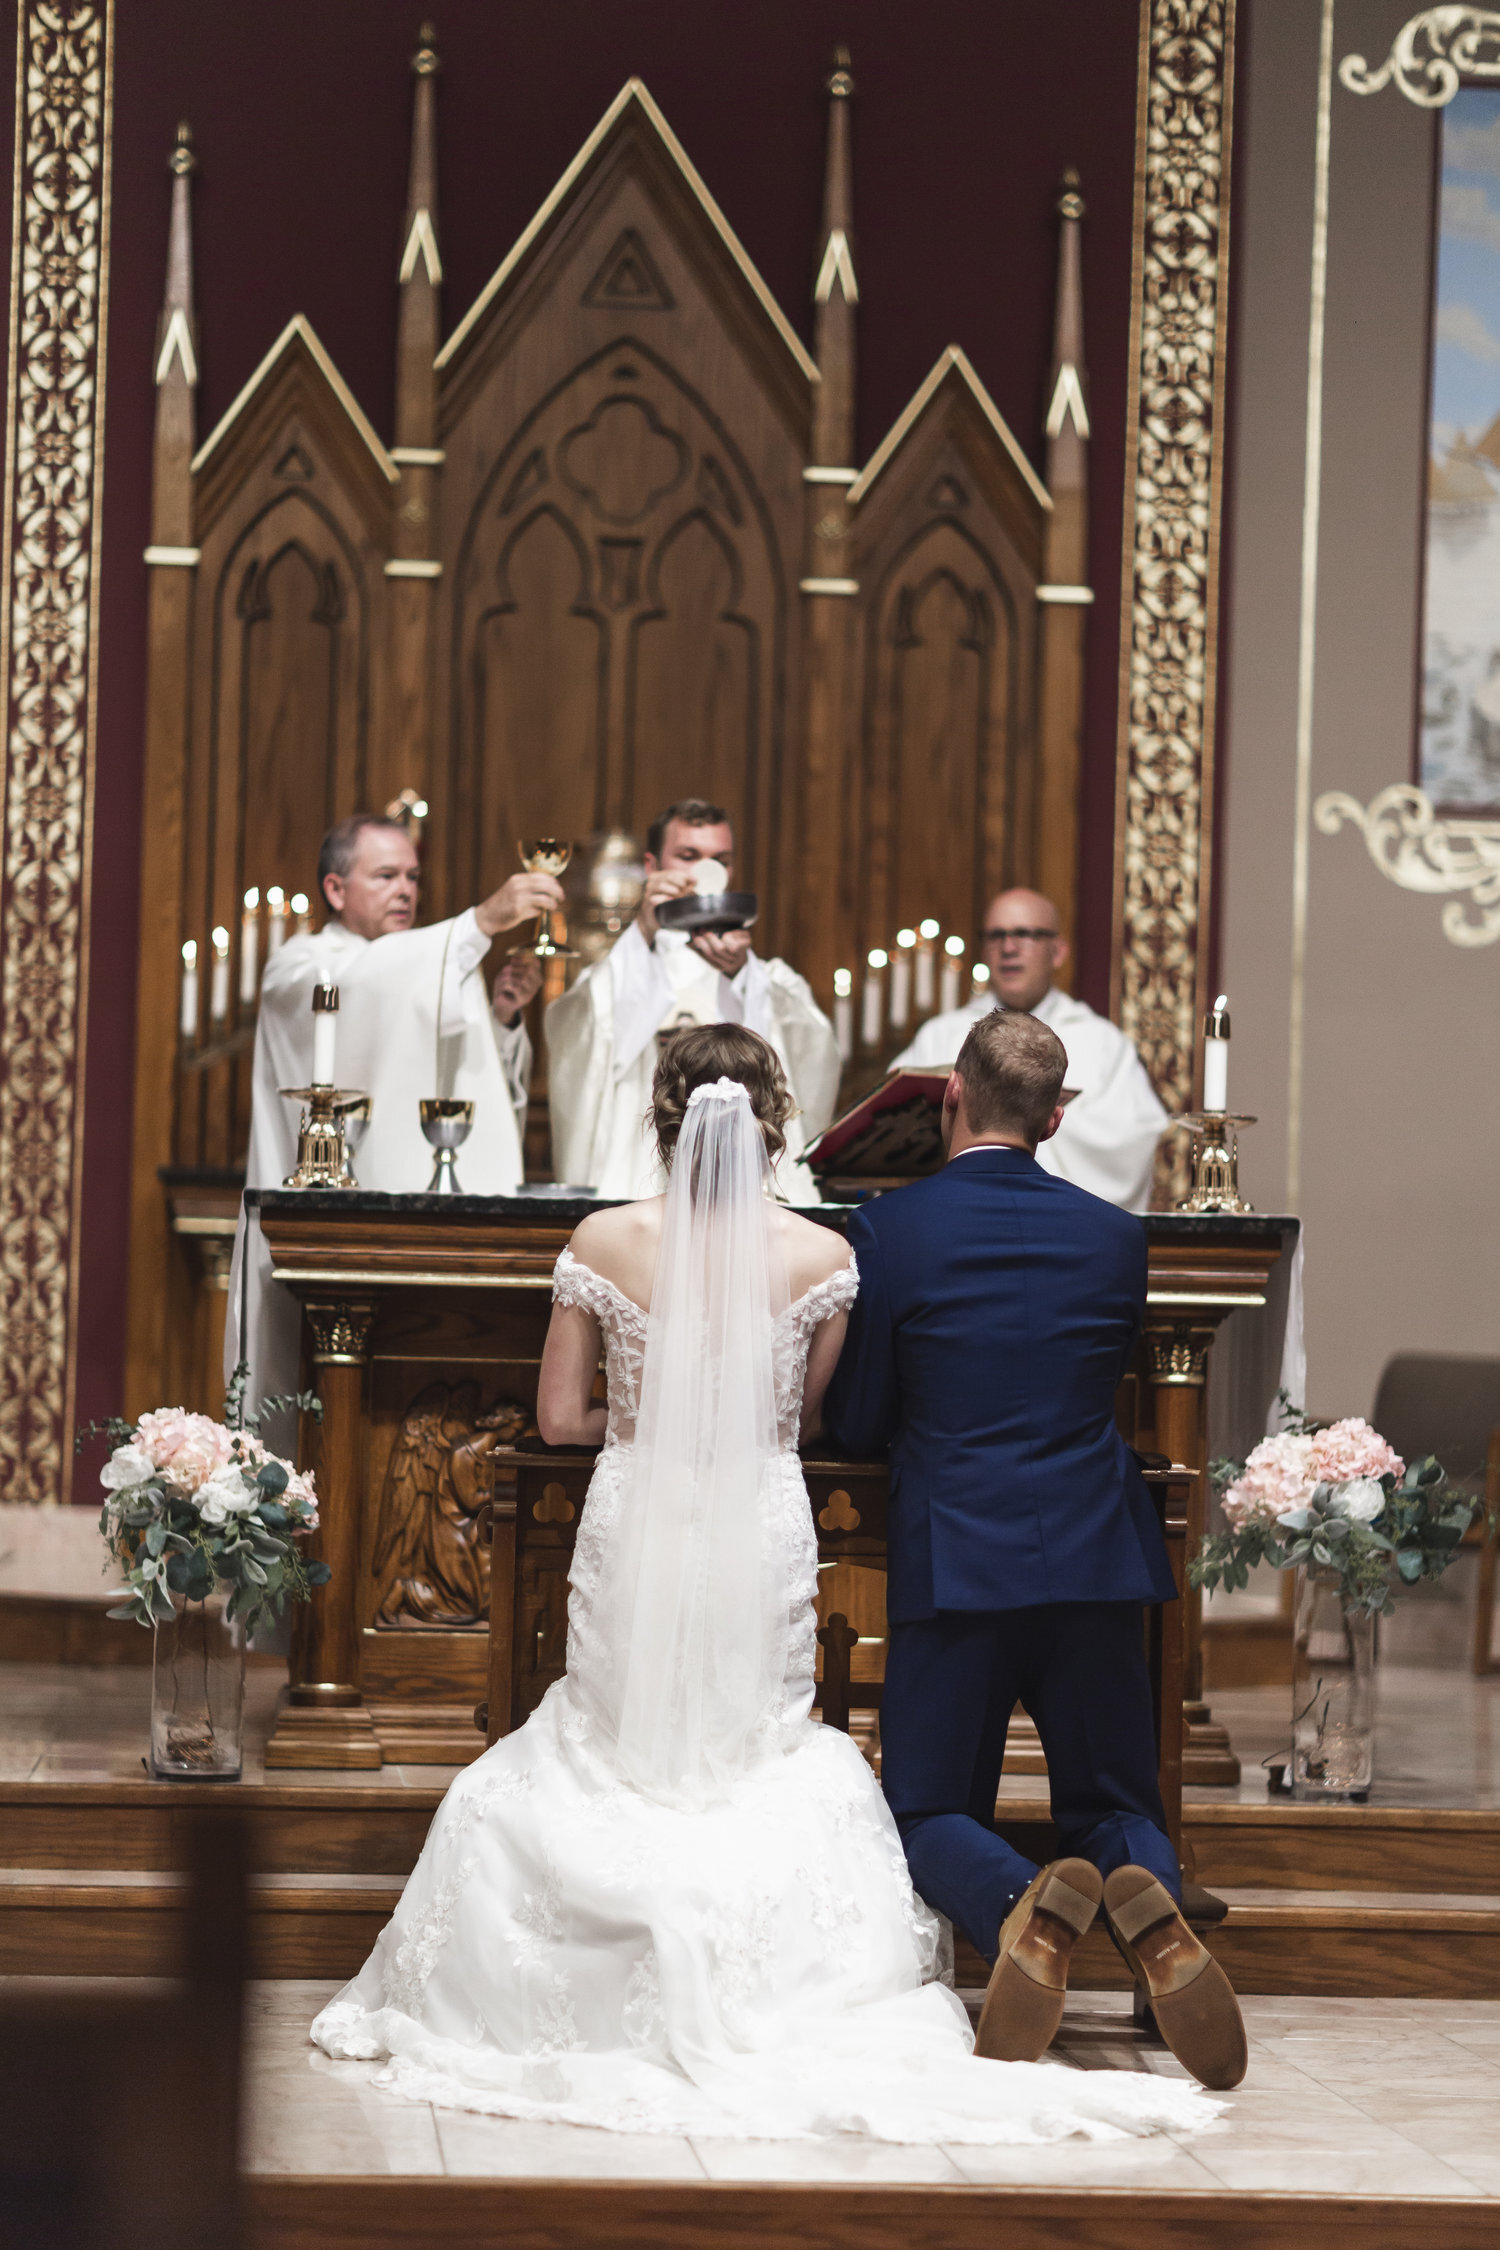 Answering Common Questions from Non-Catholic Wedding Guests